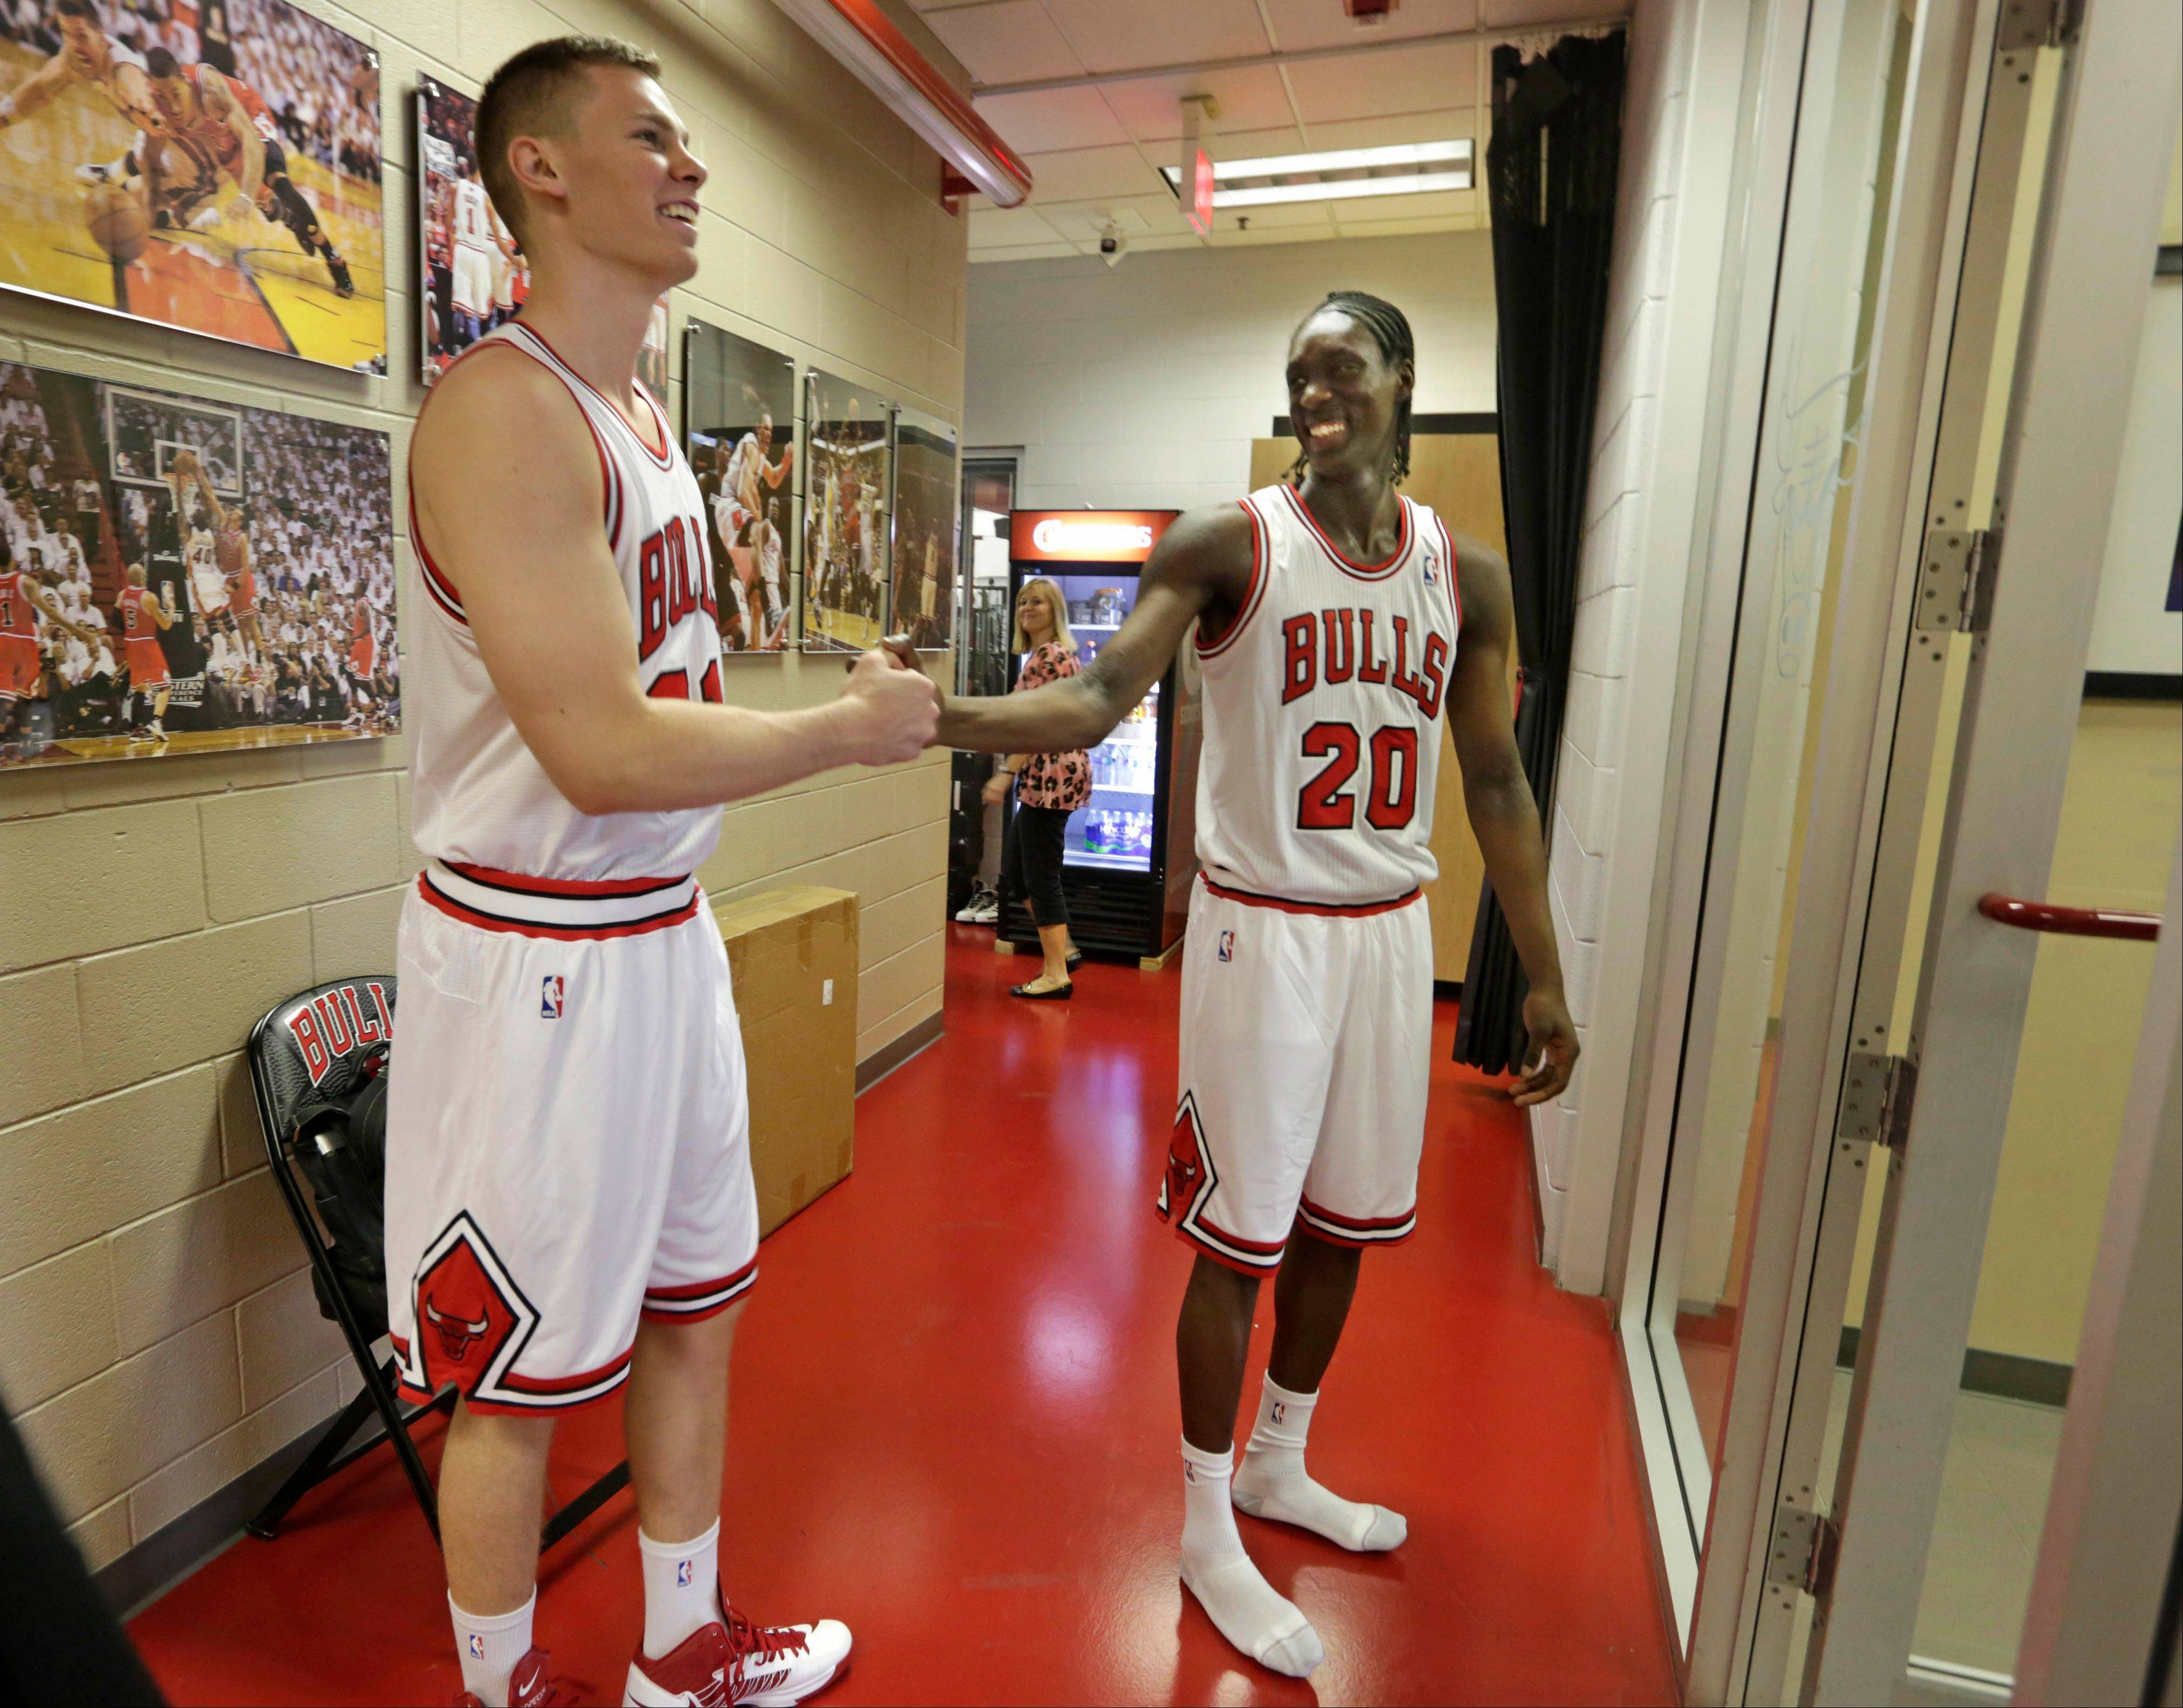 Bulls draft picks Erik Murphy, left, and Tony Snell, meet in the hallway at the Berto Center on Monday after changing into their new uniforms for the first time. The Bulls took Snell (New Mexico) with the 20th pick and Murphy (Florida) with the 49th.